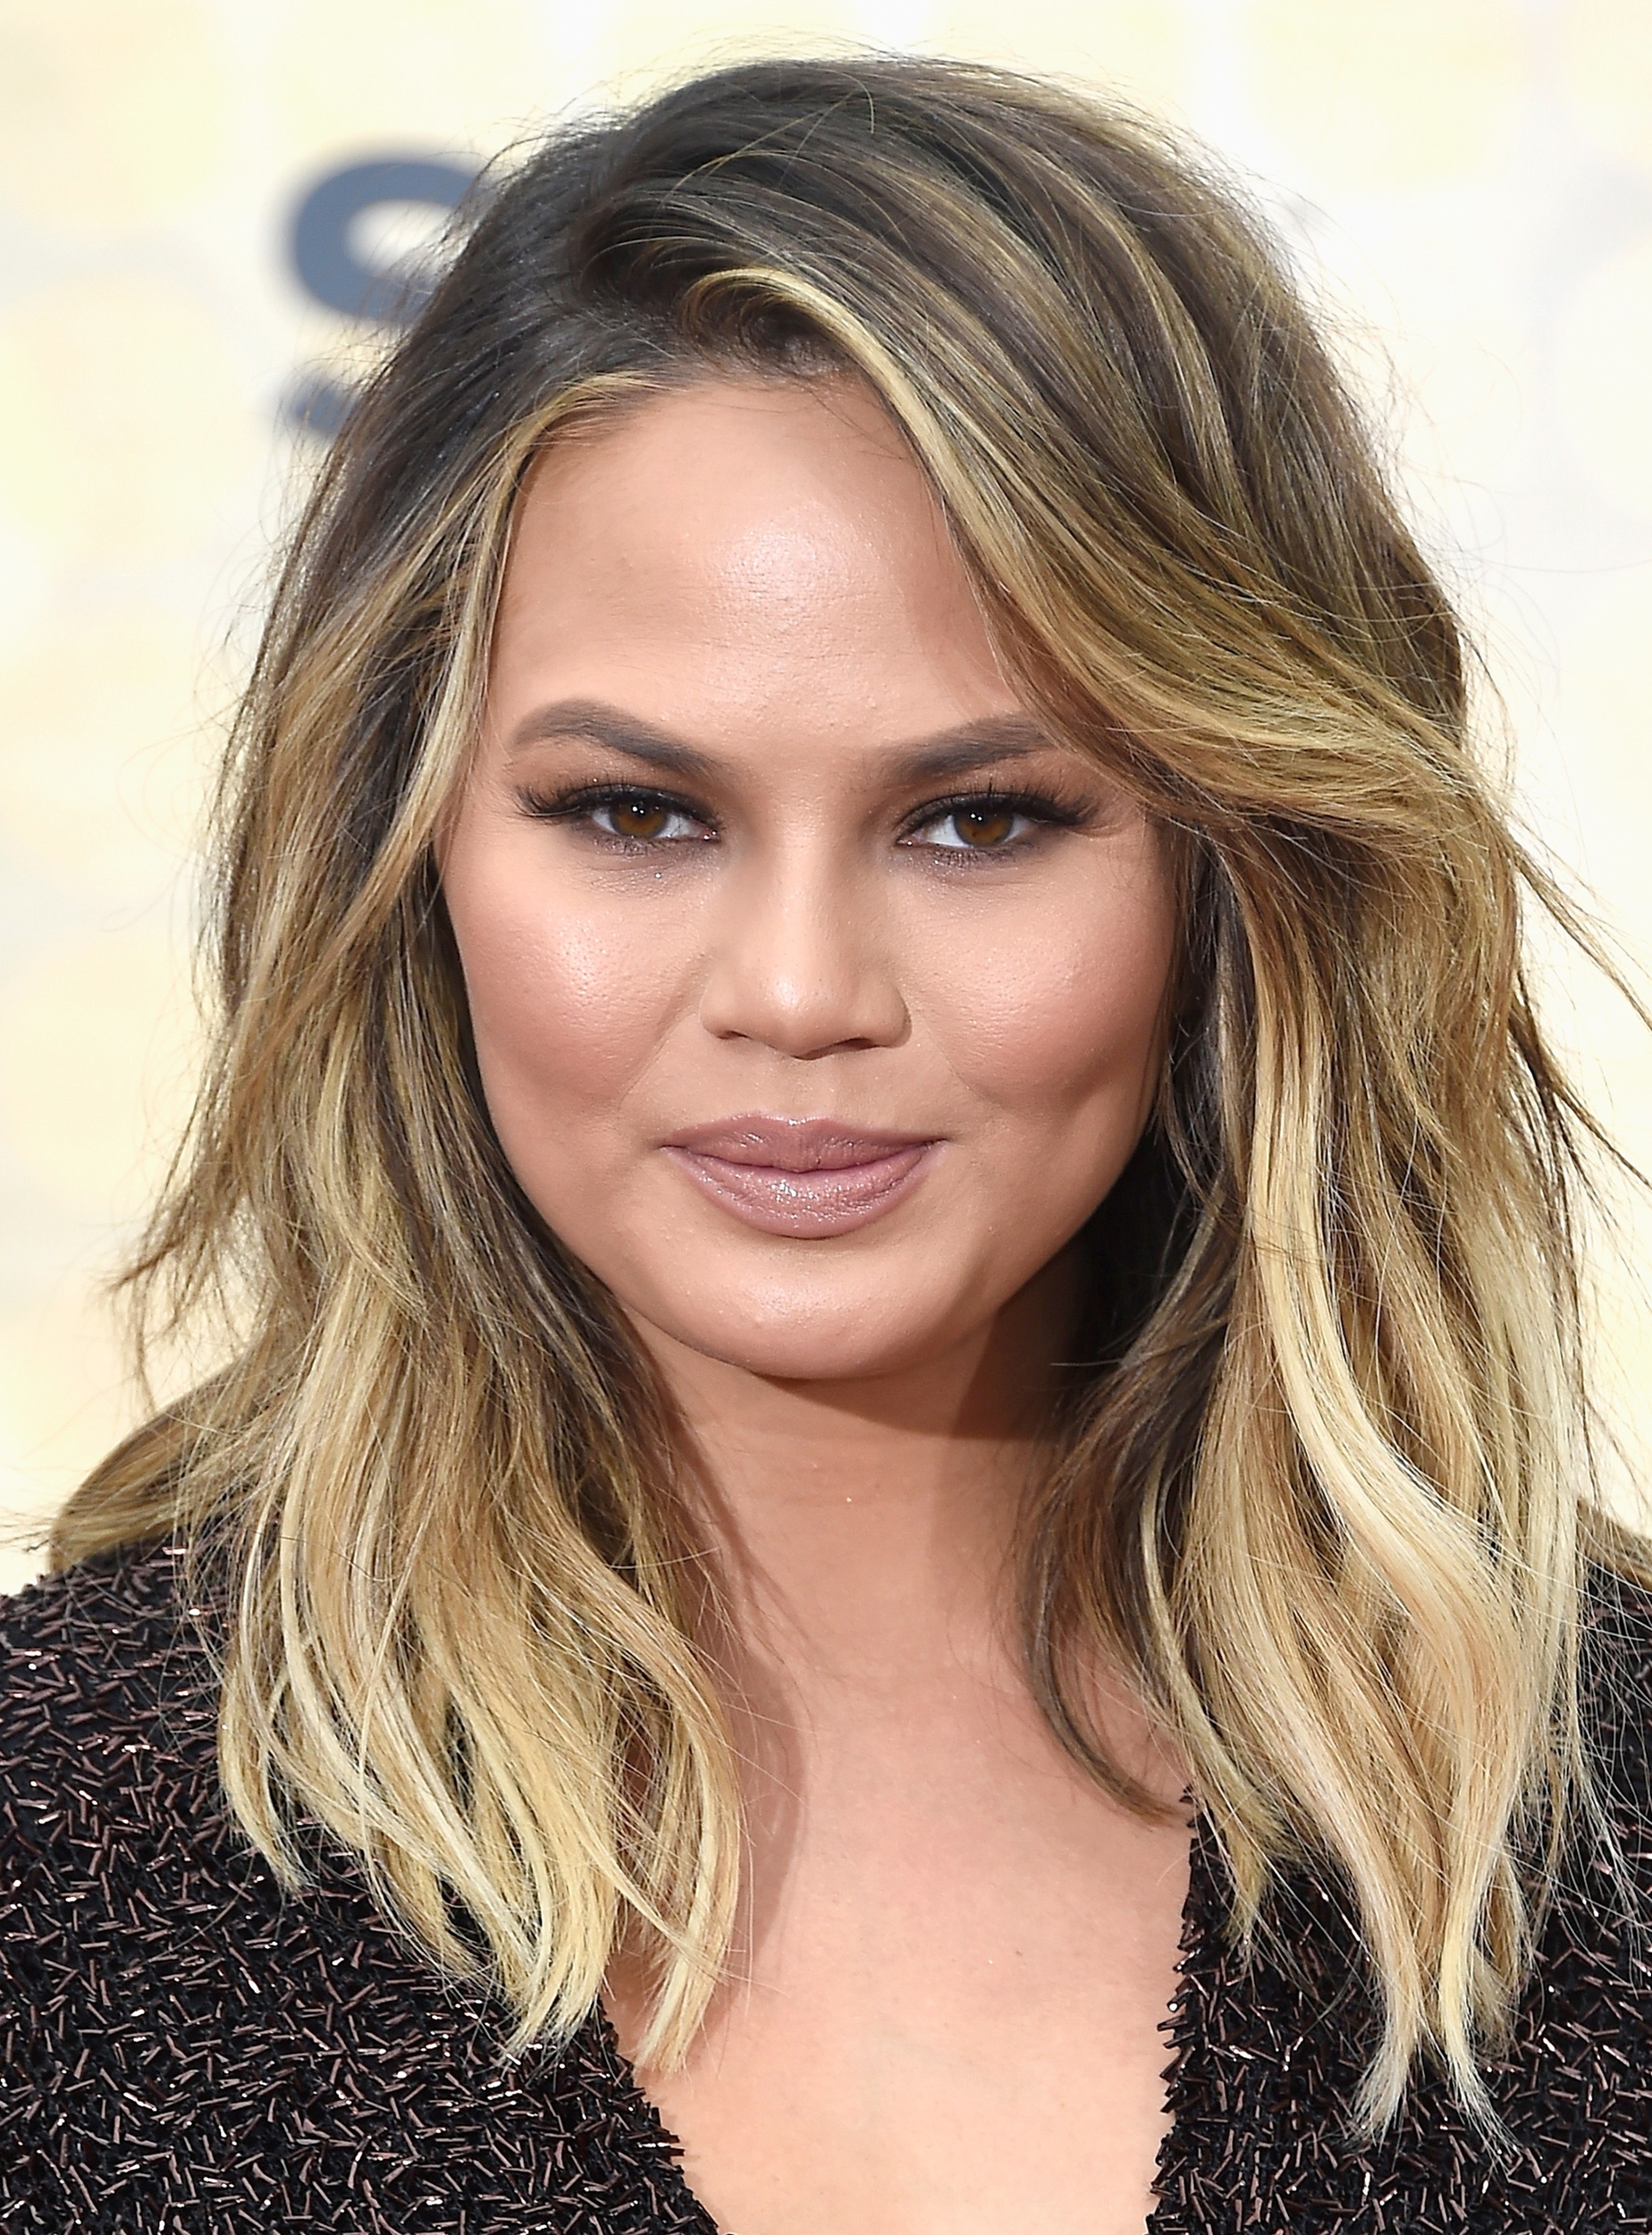 28 Best Hairstyles For Round Faces within Hair Styles For Big Faces